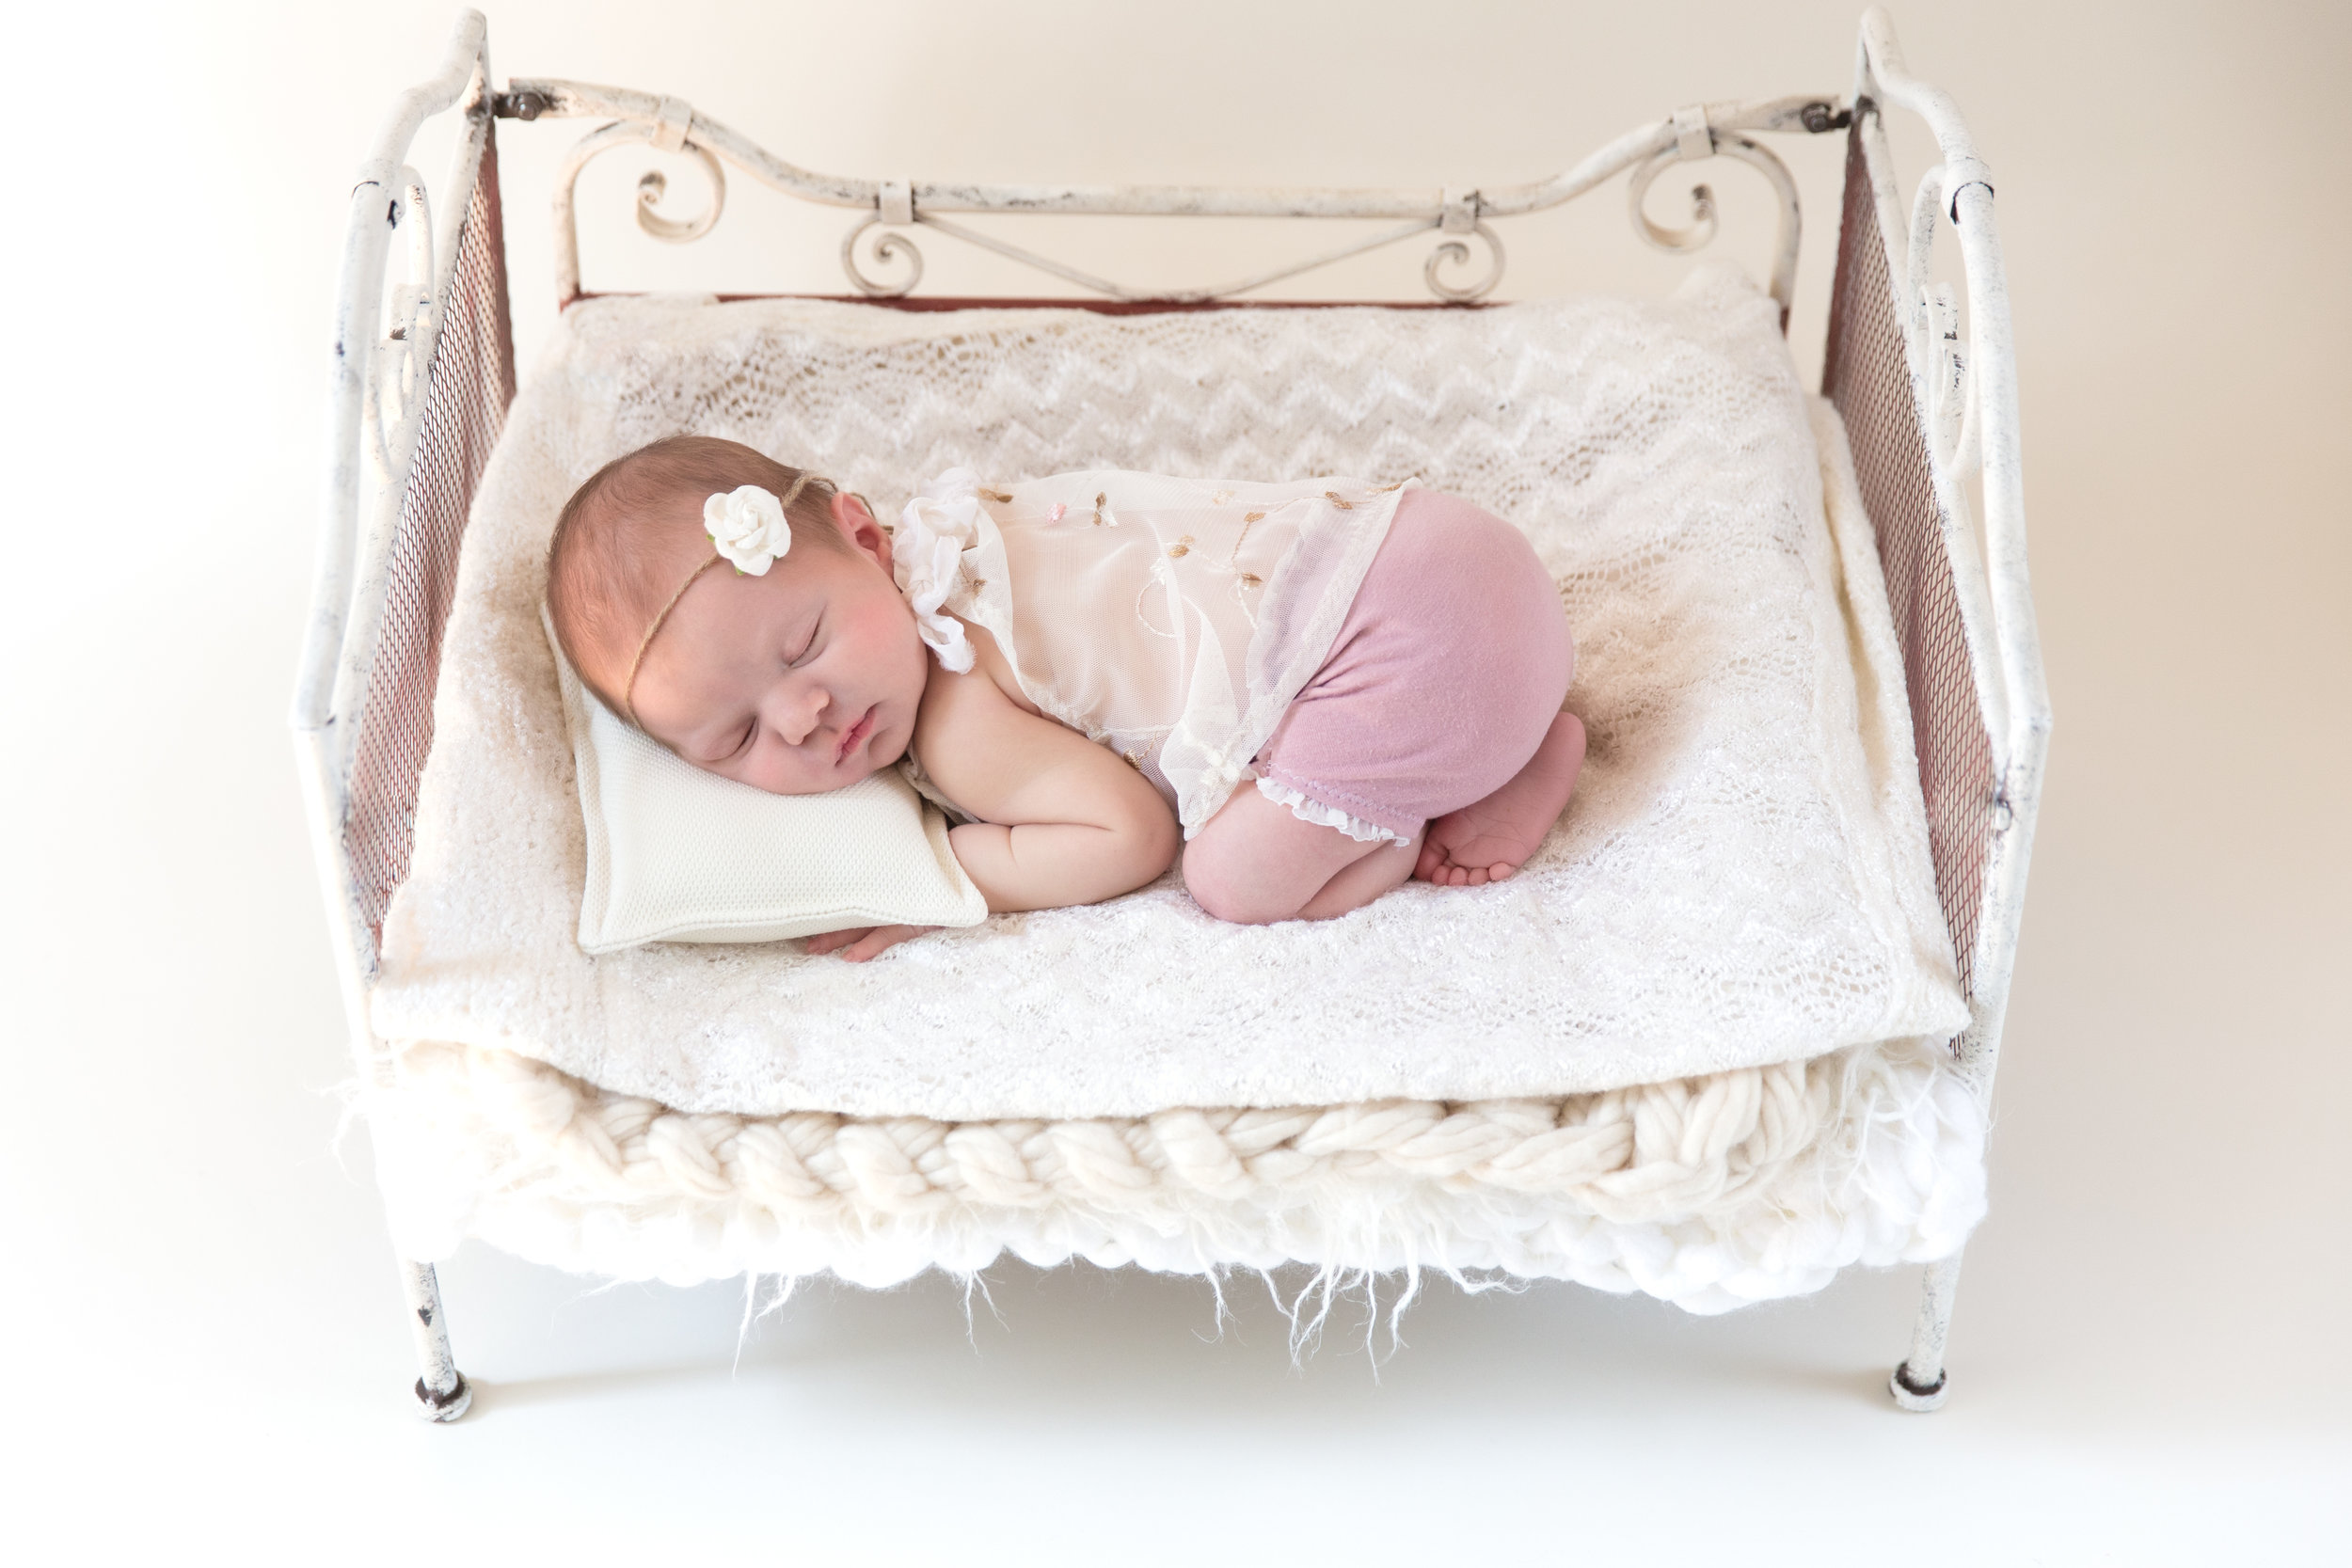 Newborn baby girl lying on an antique bed. Newborn Calgary Photographer - Milashka Photography